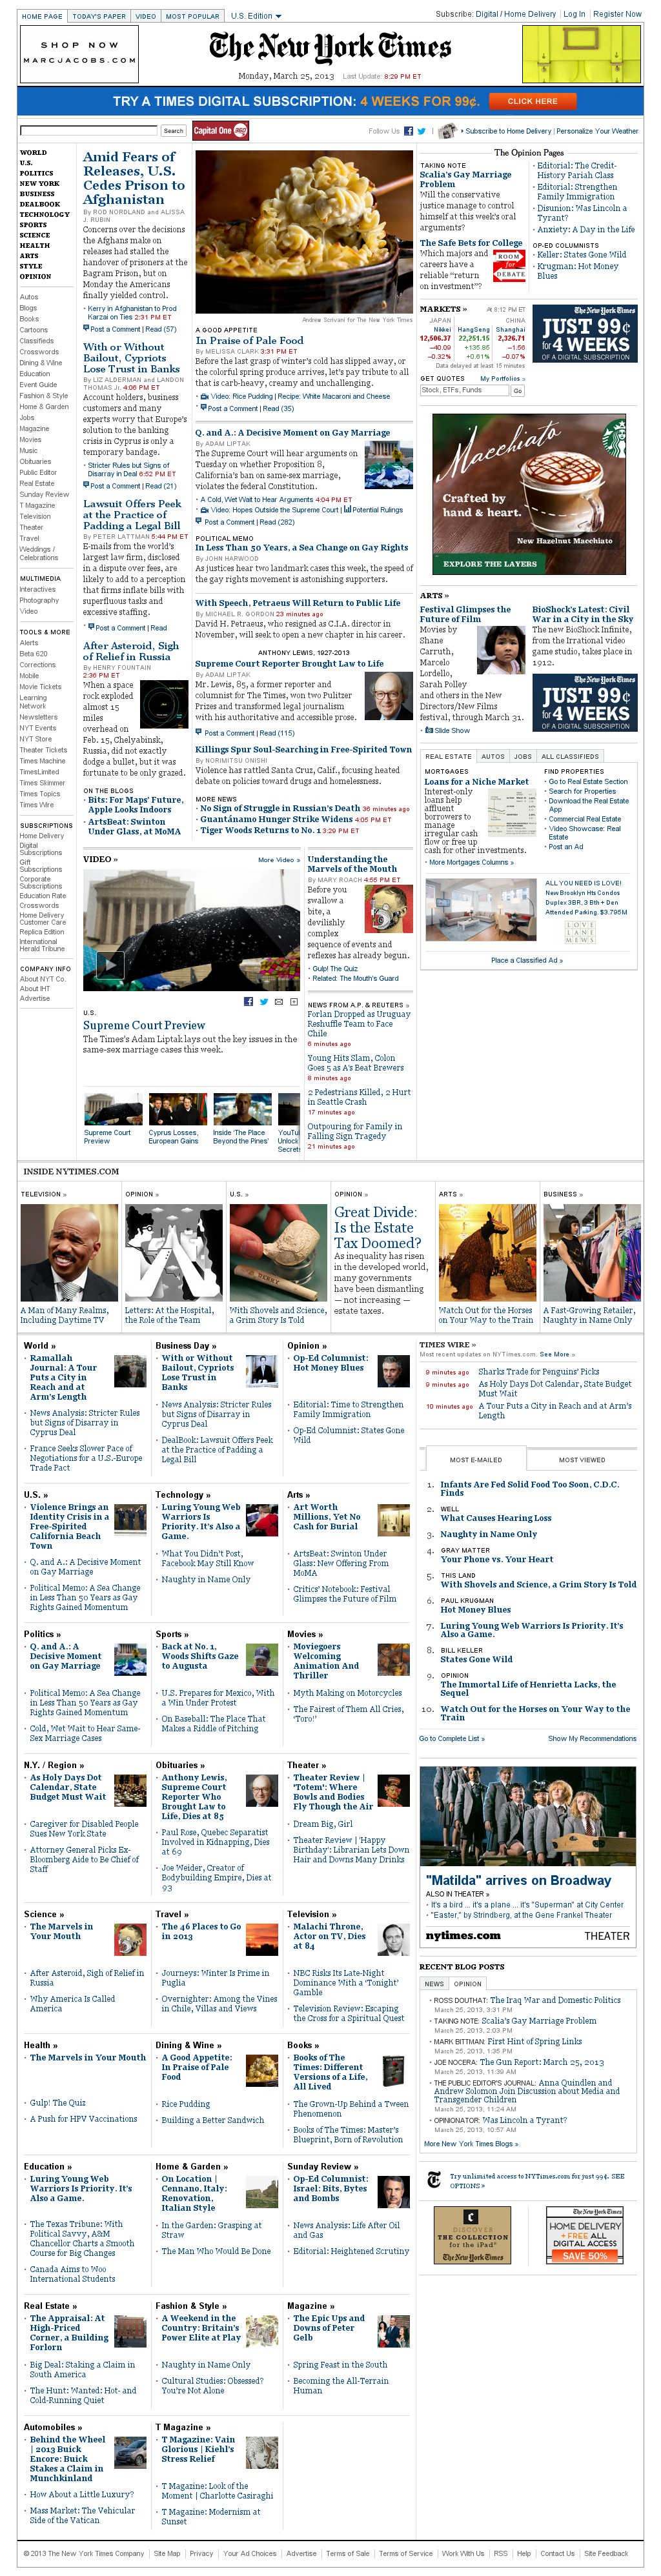 The New York Times at Tuesday March 26, 2013, 12:33 a.m. UTC